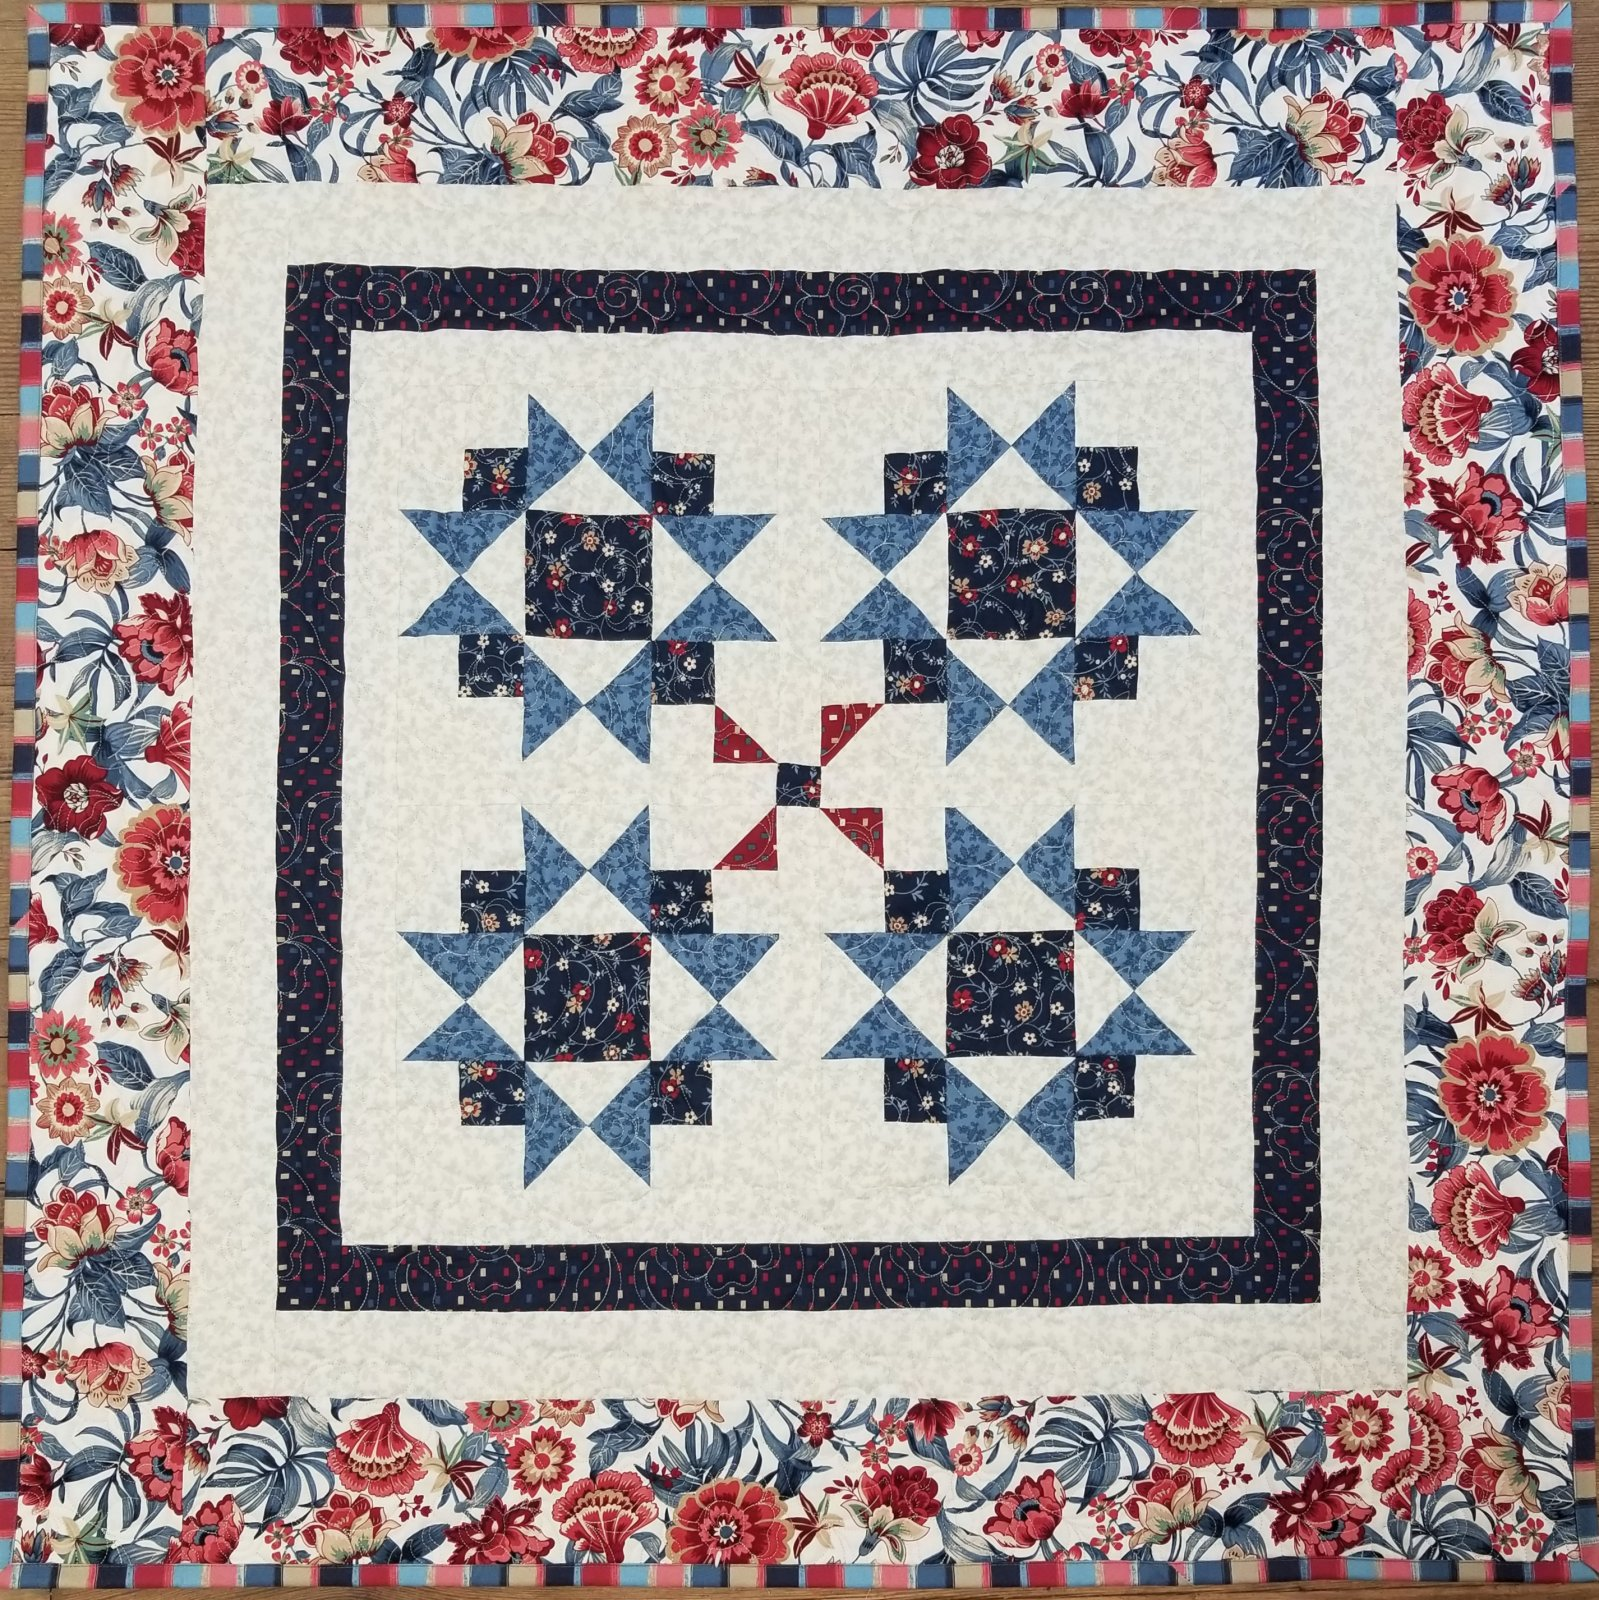 Blue Meadows Tranquility Quilt Kit